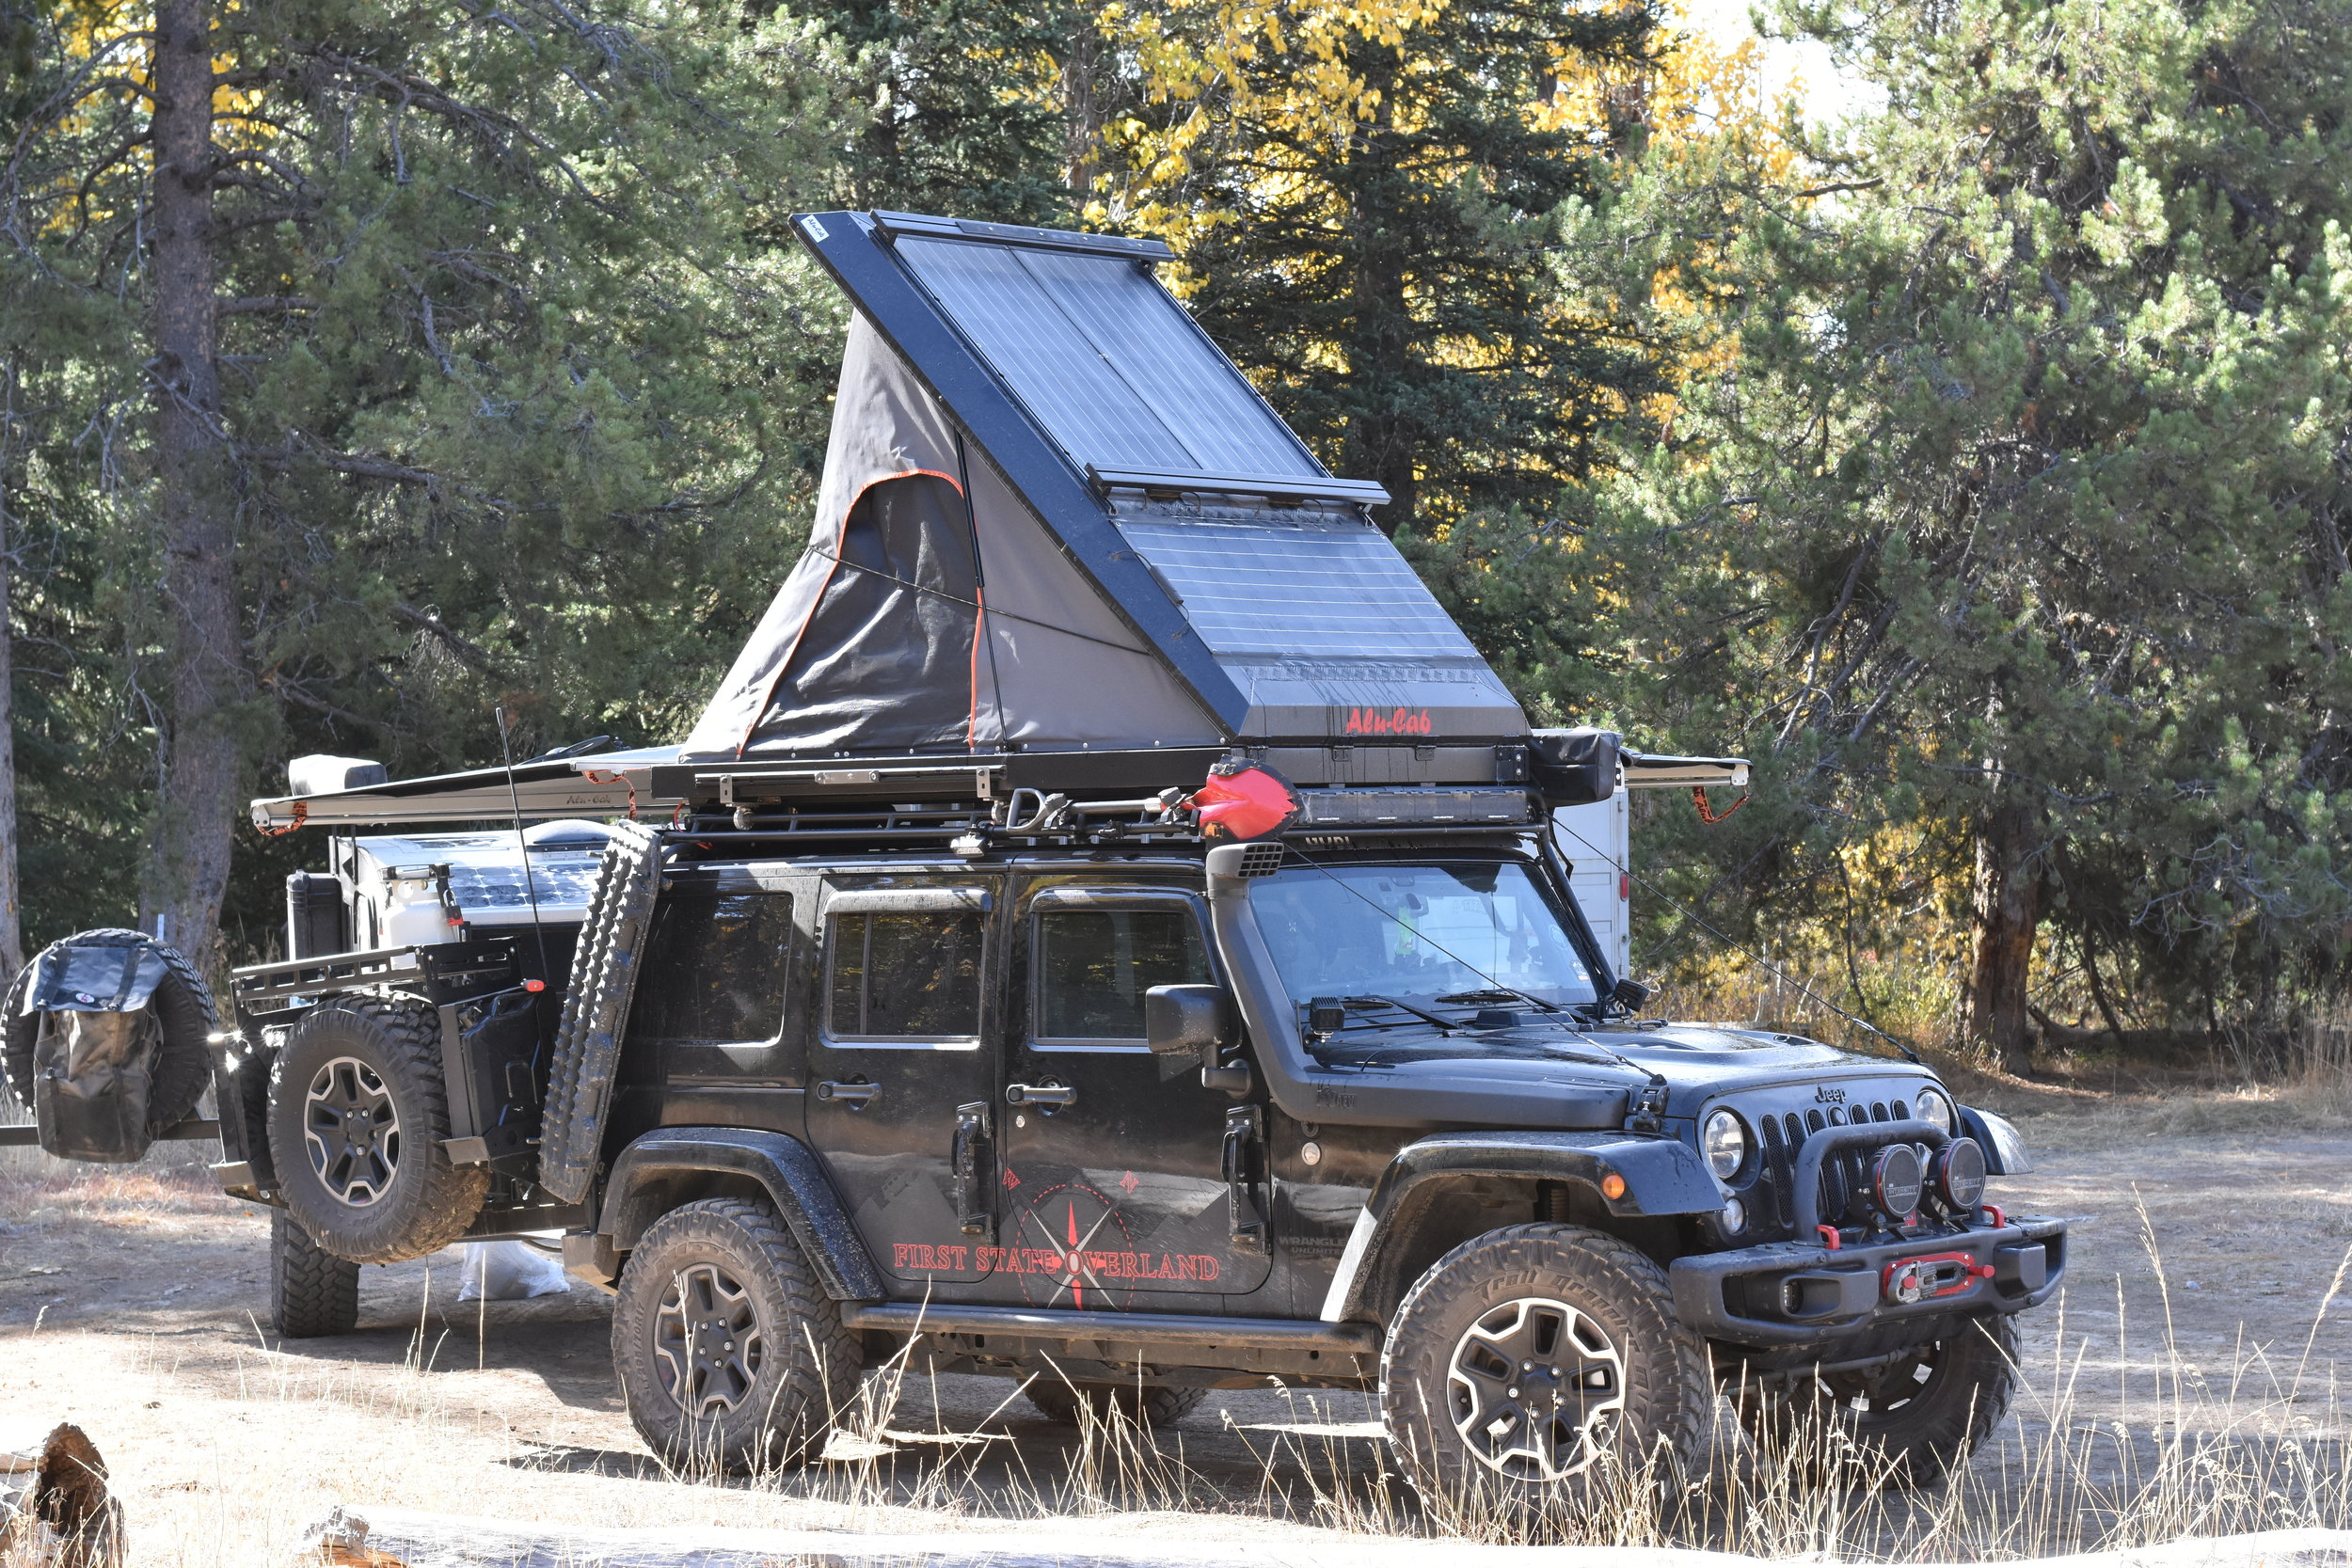 Package Deal - (Side note, if anyone is interested in the entire Jeep + Trailer matching package as a fully functional turn-key off grid rig, contact me and we'll talk about discounting for purchasing both. Jeep has 42,000 miles and is a 2015 Rubicon Hard Rock with solar, RTT fridge, partner stove, water tank, comms, and so much more.)